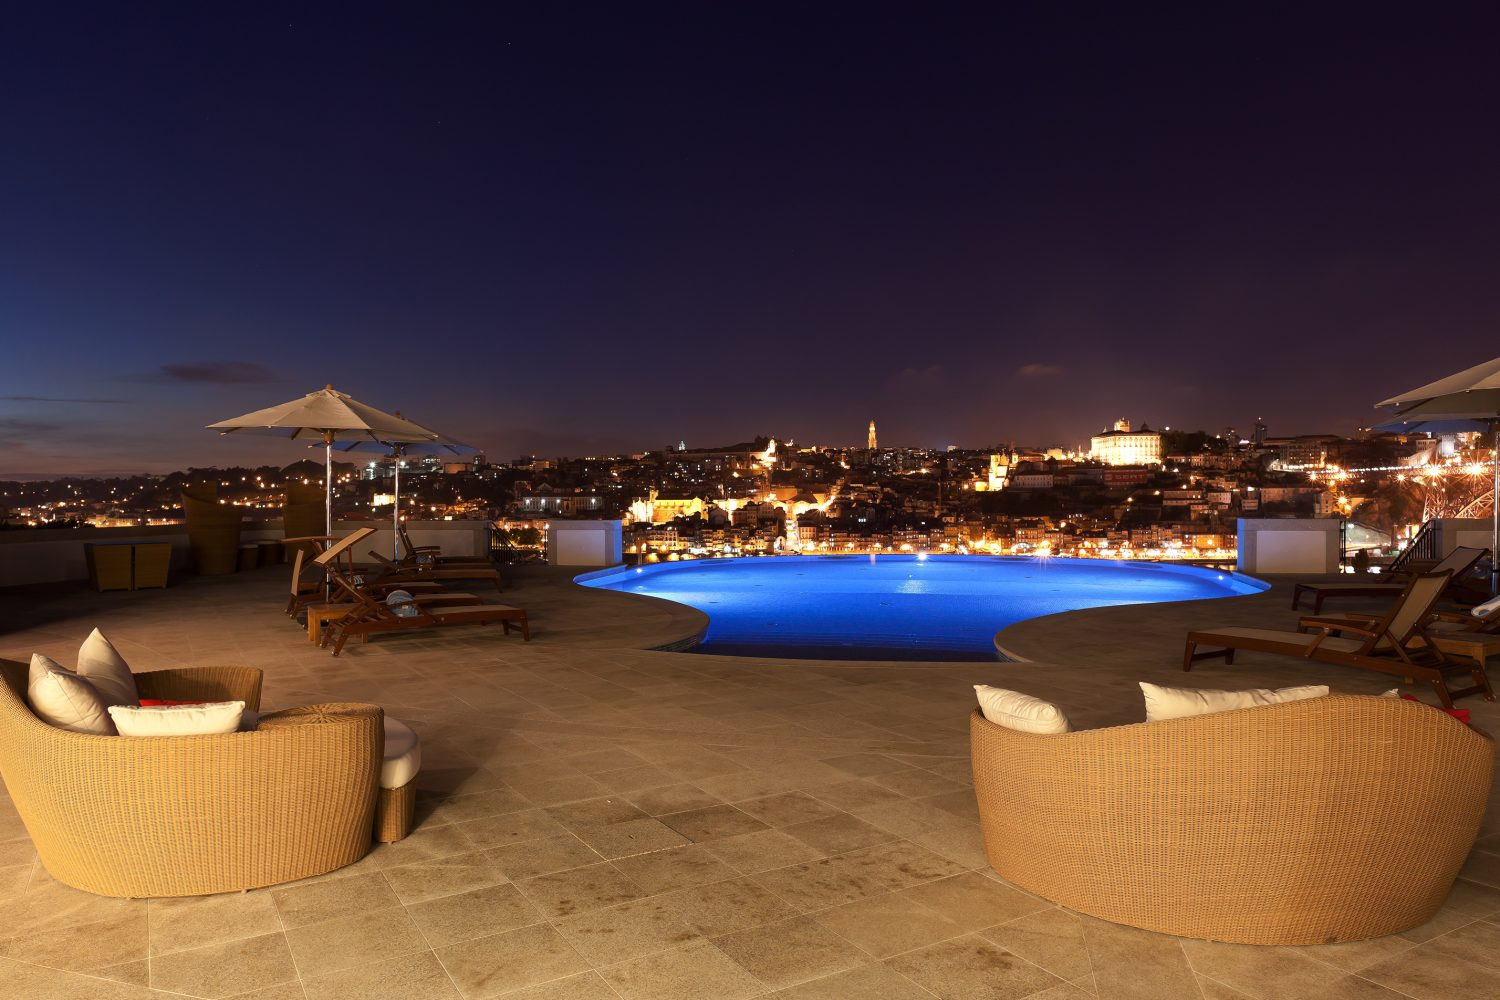 Infinity Pool Outdoor at Nightat Yeatman Hotel Relais & Chateaux